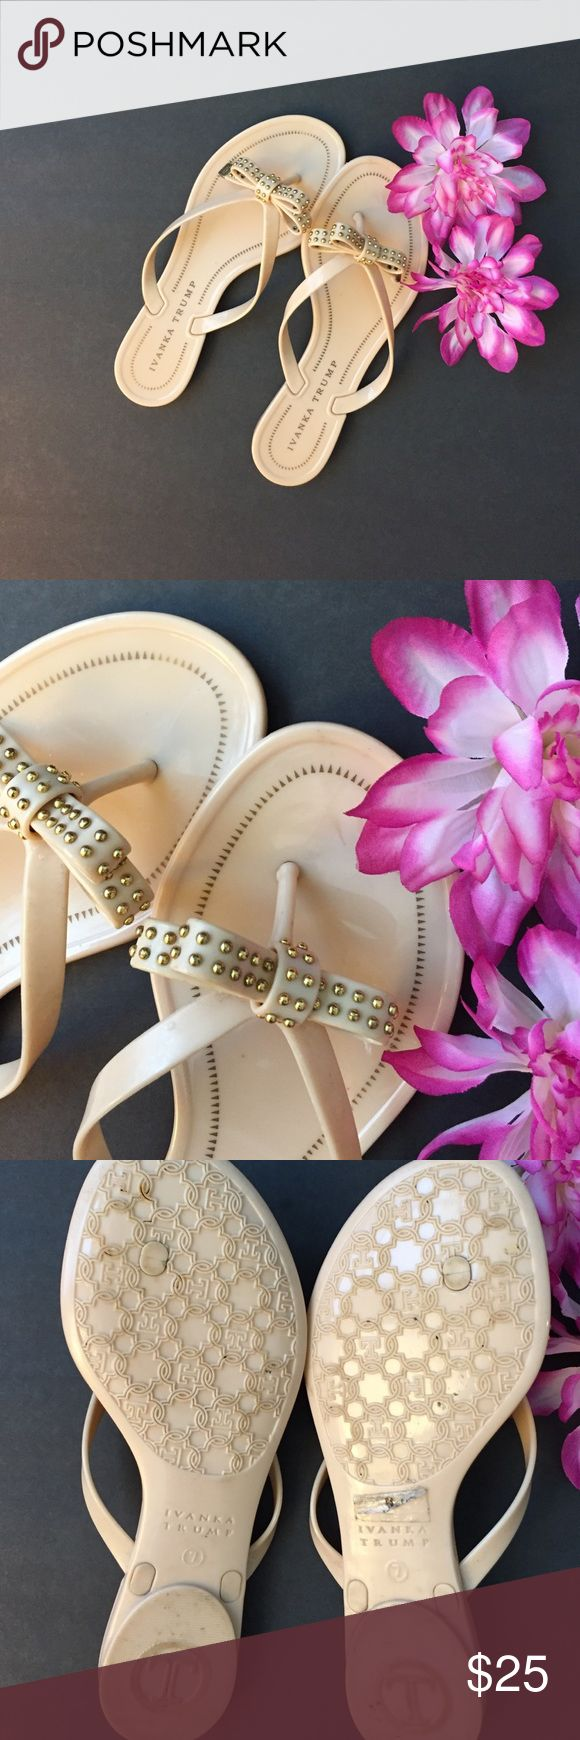 Slippers Nude slippers with delicate gold detailing. Water resistant. Ivanka Trump Shoes Slippers